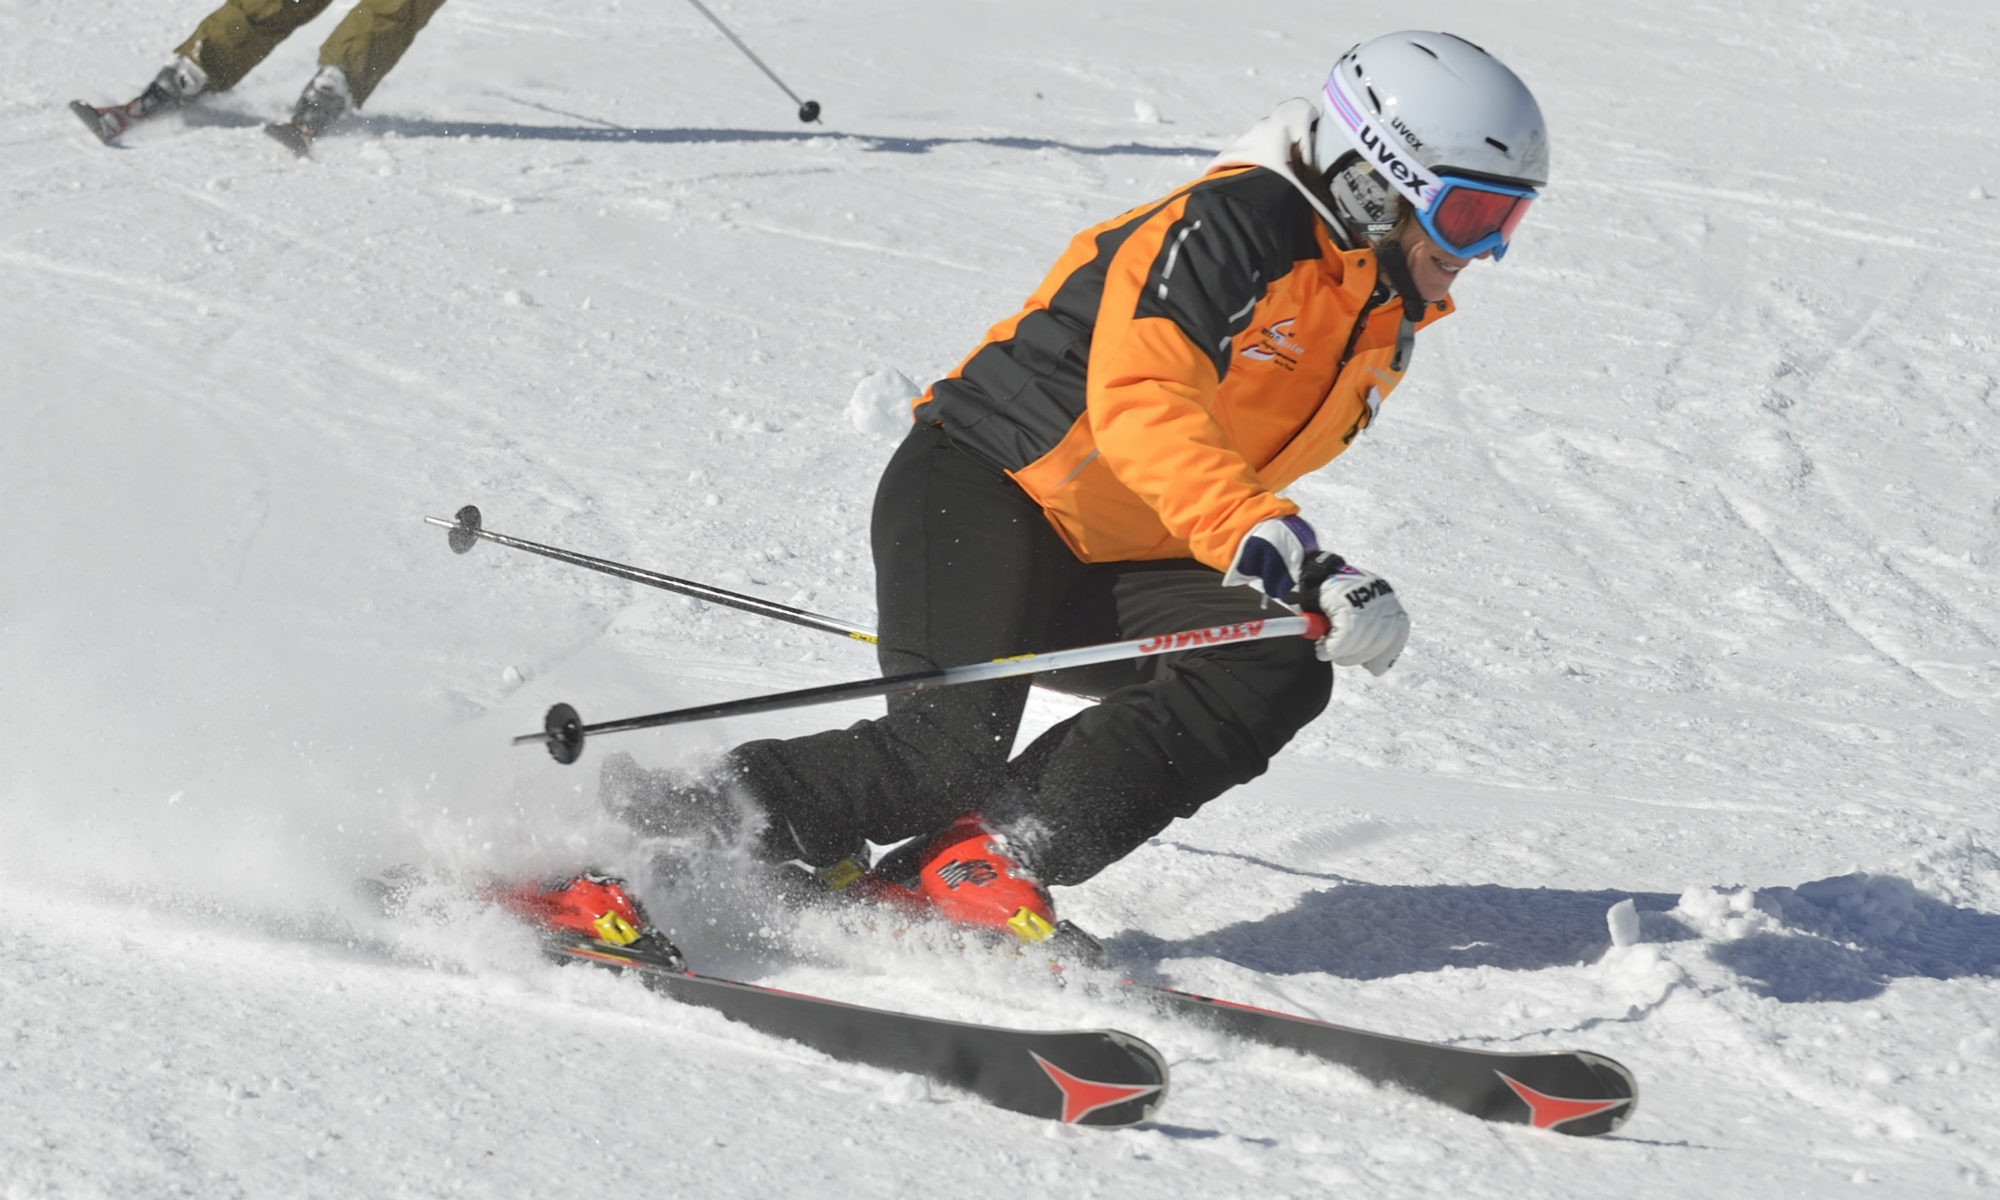 A professional skier demonstrating edging.